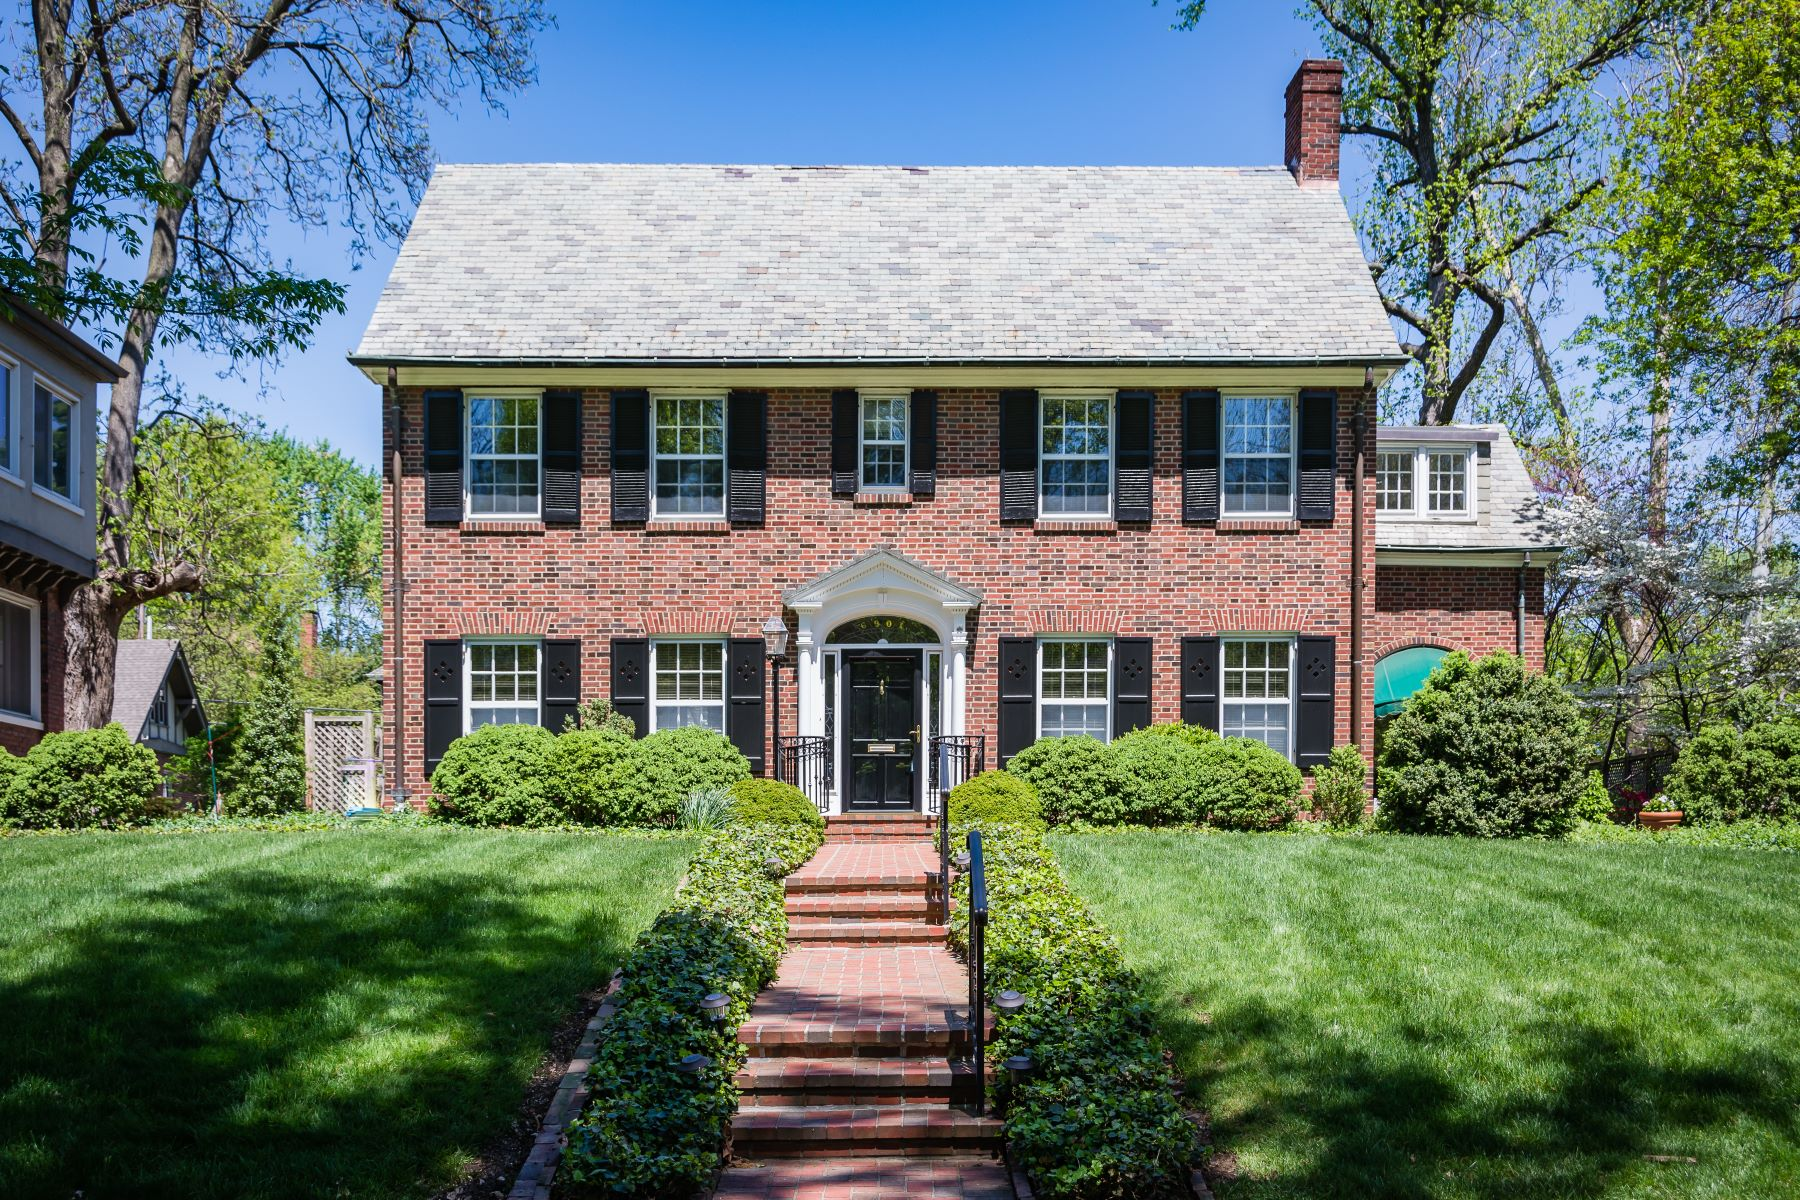 Single Family Home for Sale at Two-Story Georgian Colonial Residence 6901 Kingsbury Boulevard University City, Missouri 63130 United States